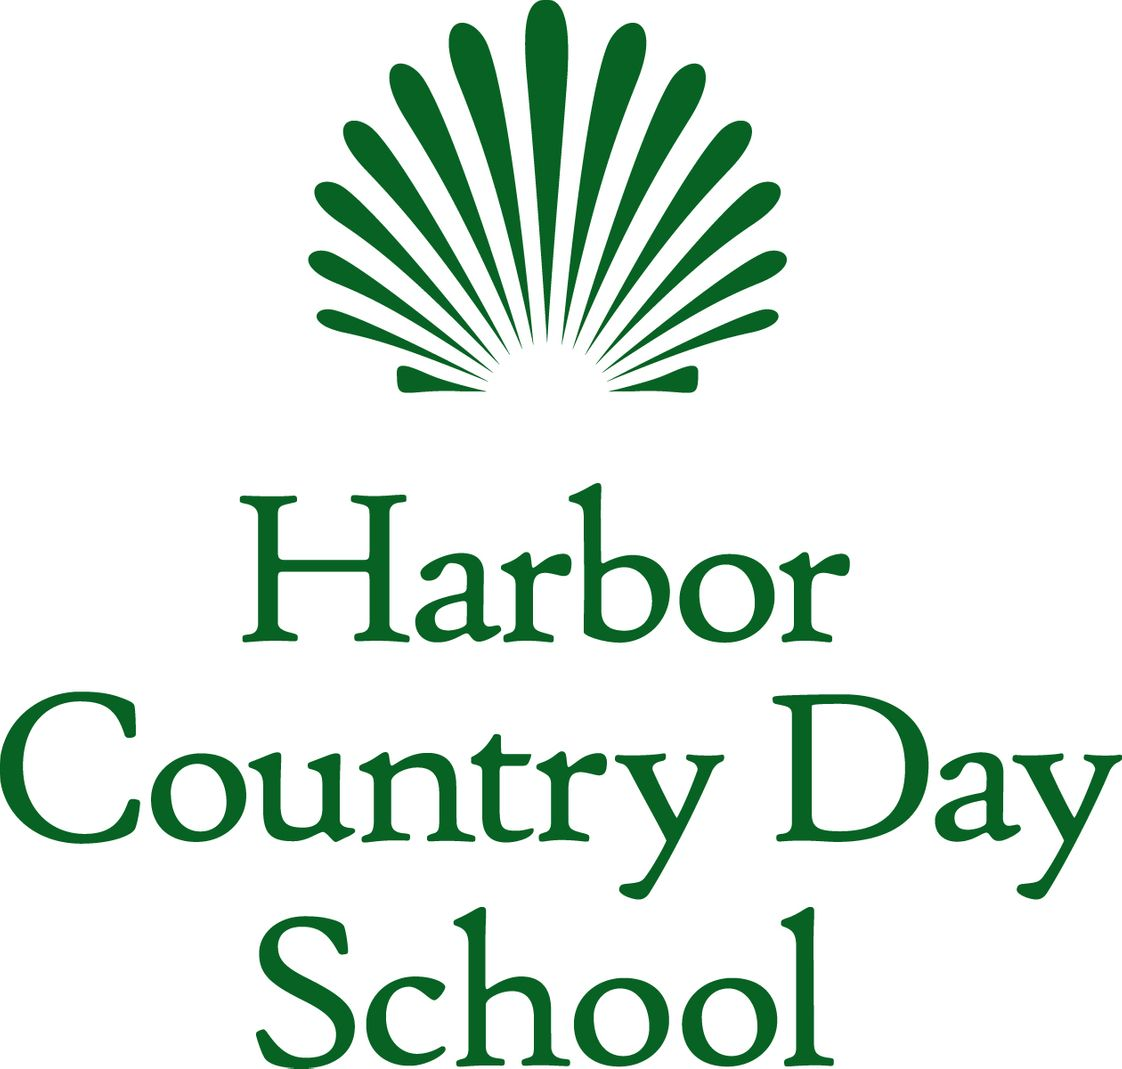 Harbor Country Day School Photo - Harbor cherishes childhood, cultivates wonder and inspires confident learners and leaders.